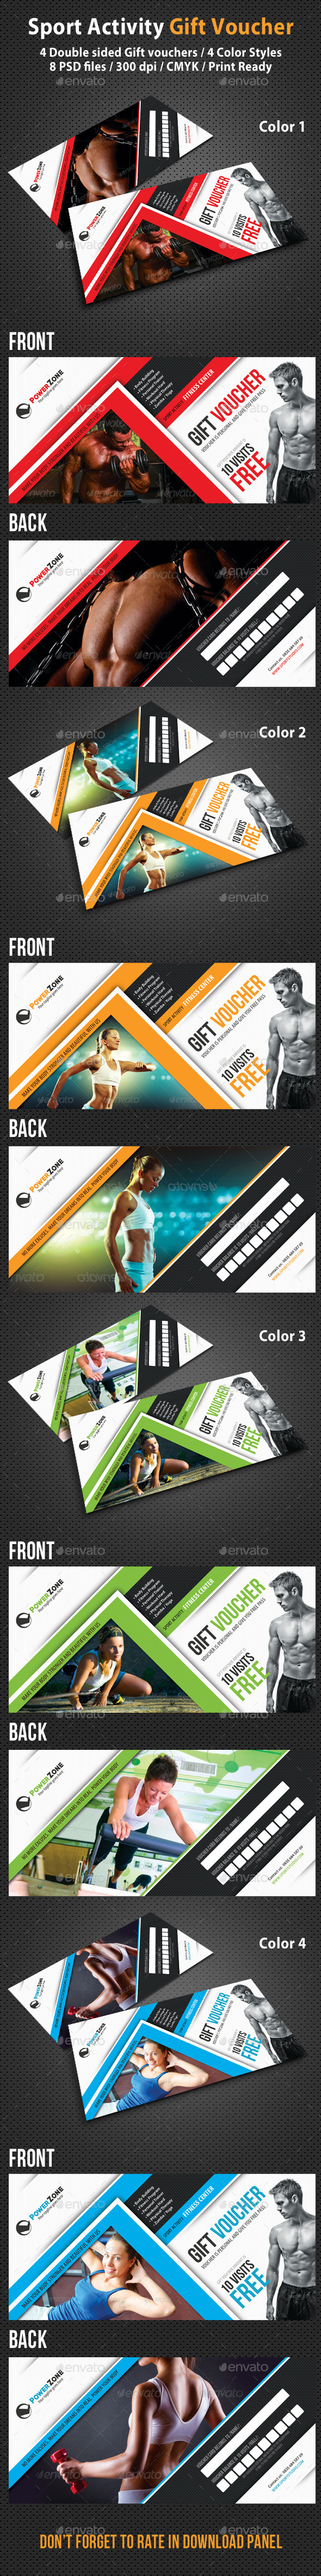 GraphicRiver Sport Activity Gift Voucher 02 9254047